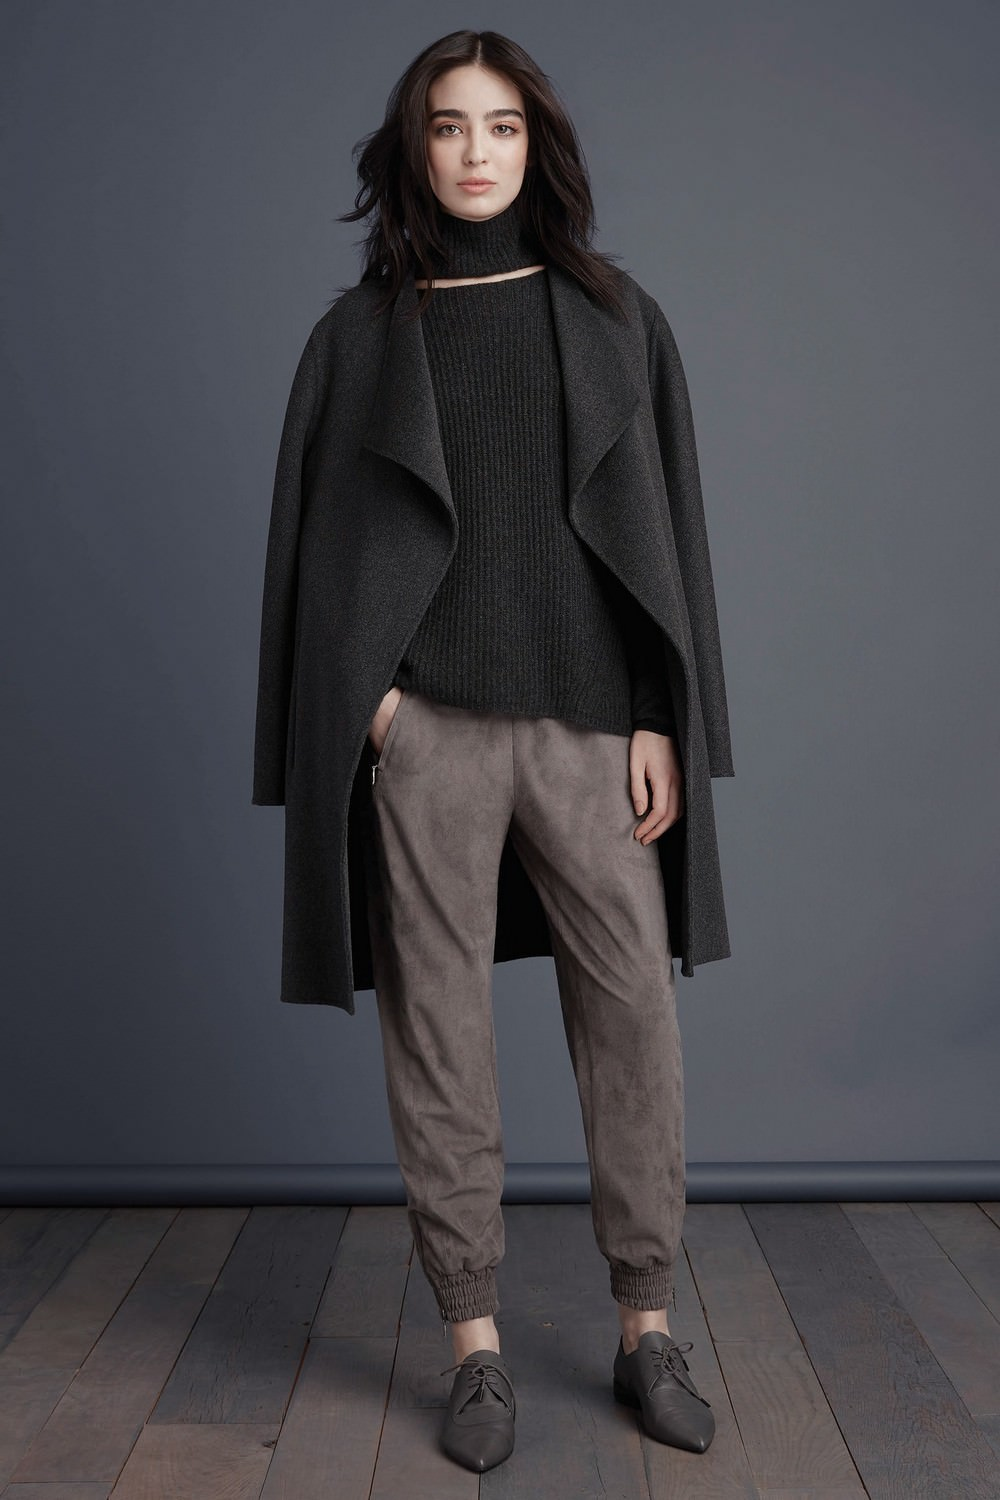 05-elie-tahari-fall-2016-ready-to-wear